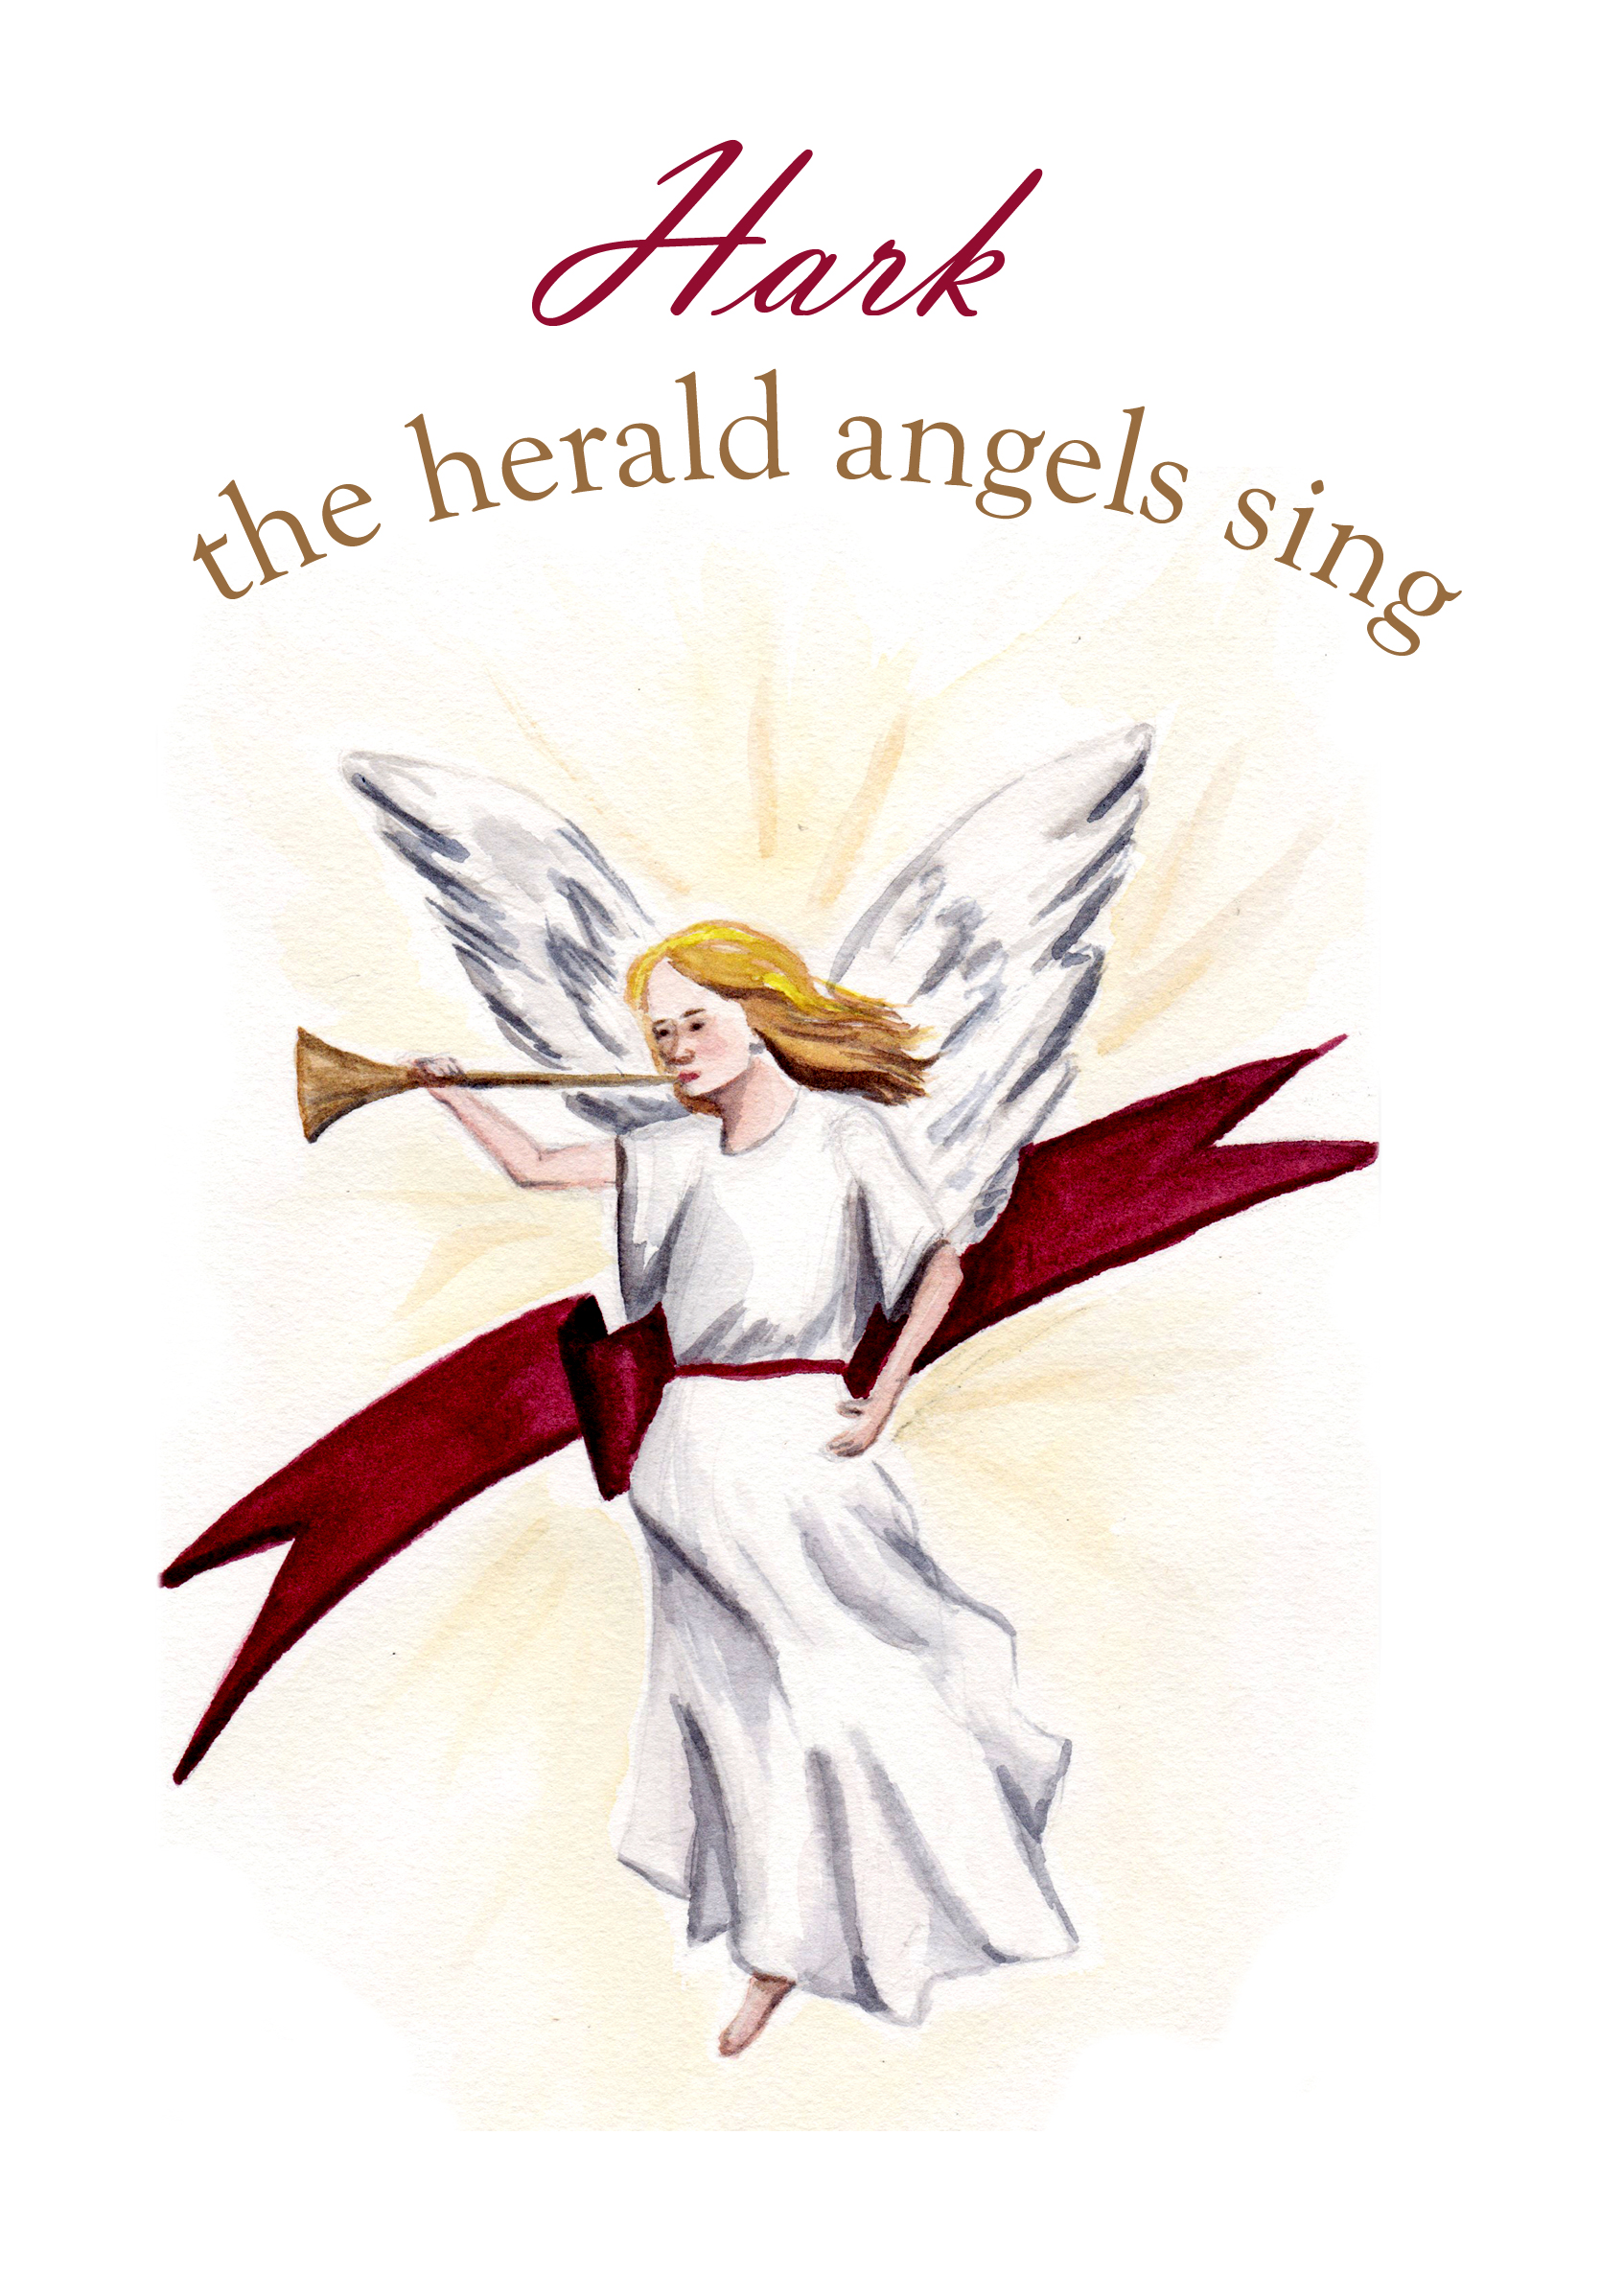 Hark the herald angels sing Christmas Card from a watercolor illustration by artist Esther BeLer Wodrich